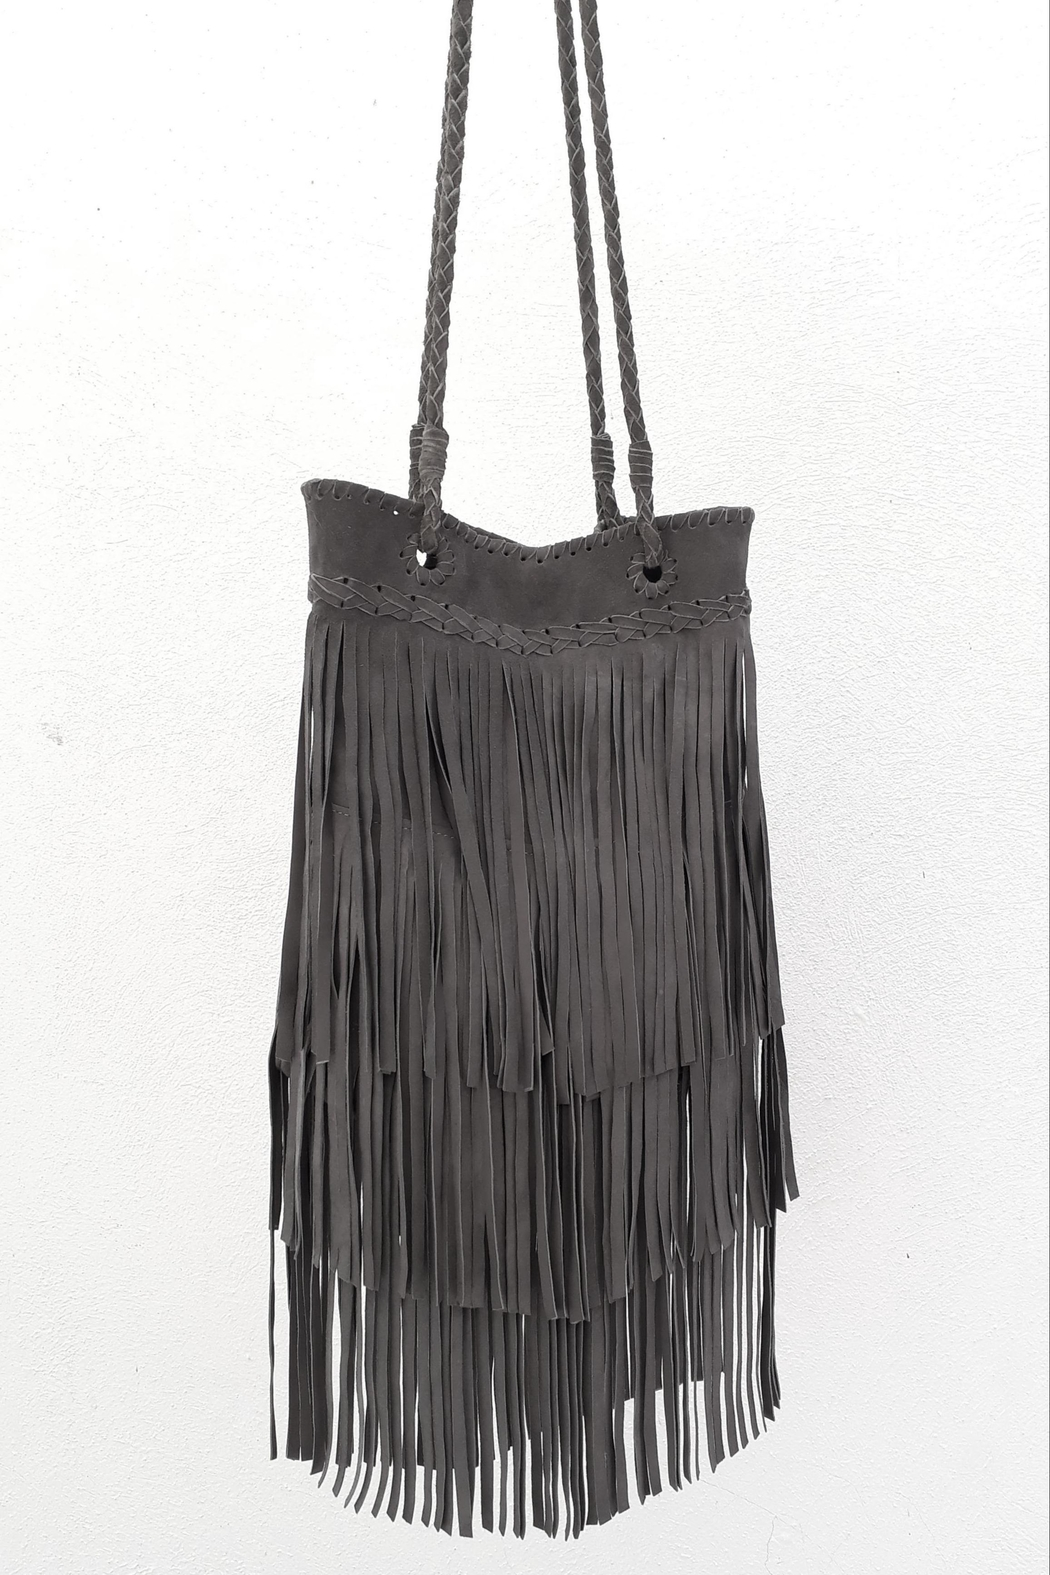 Areias Leather Gray Fringes Bag - Side Cropped Image